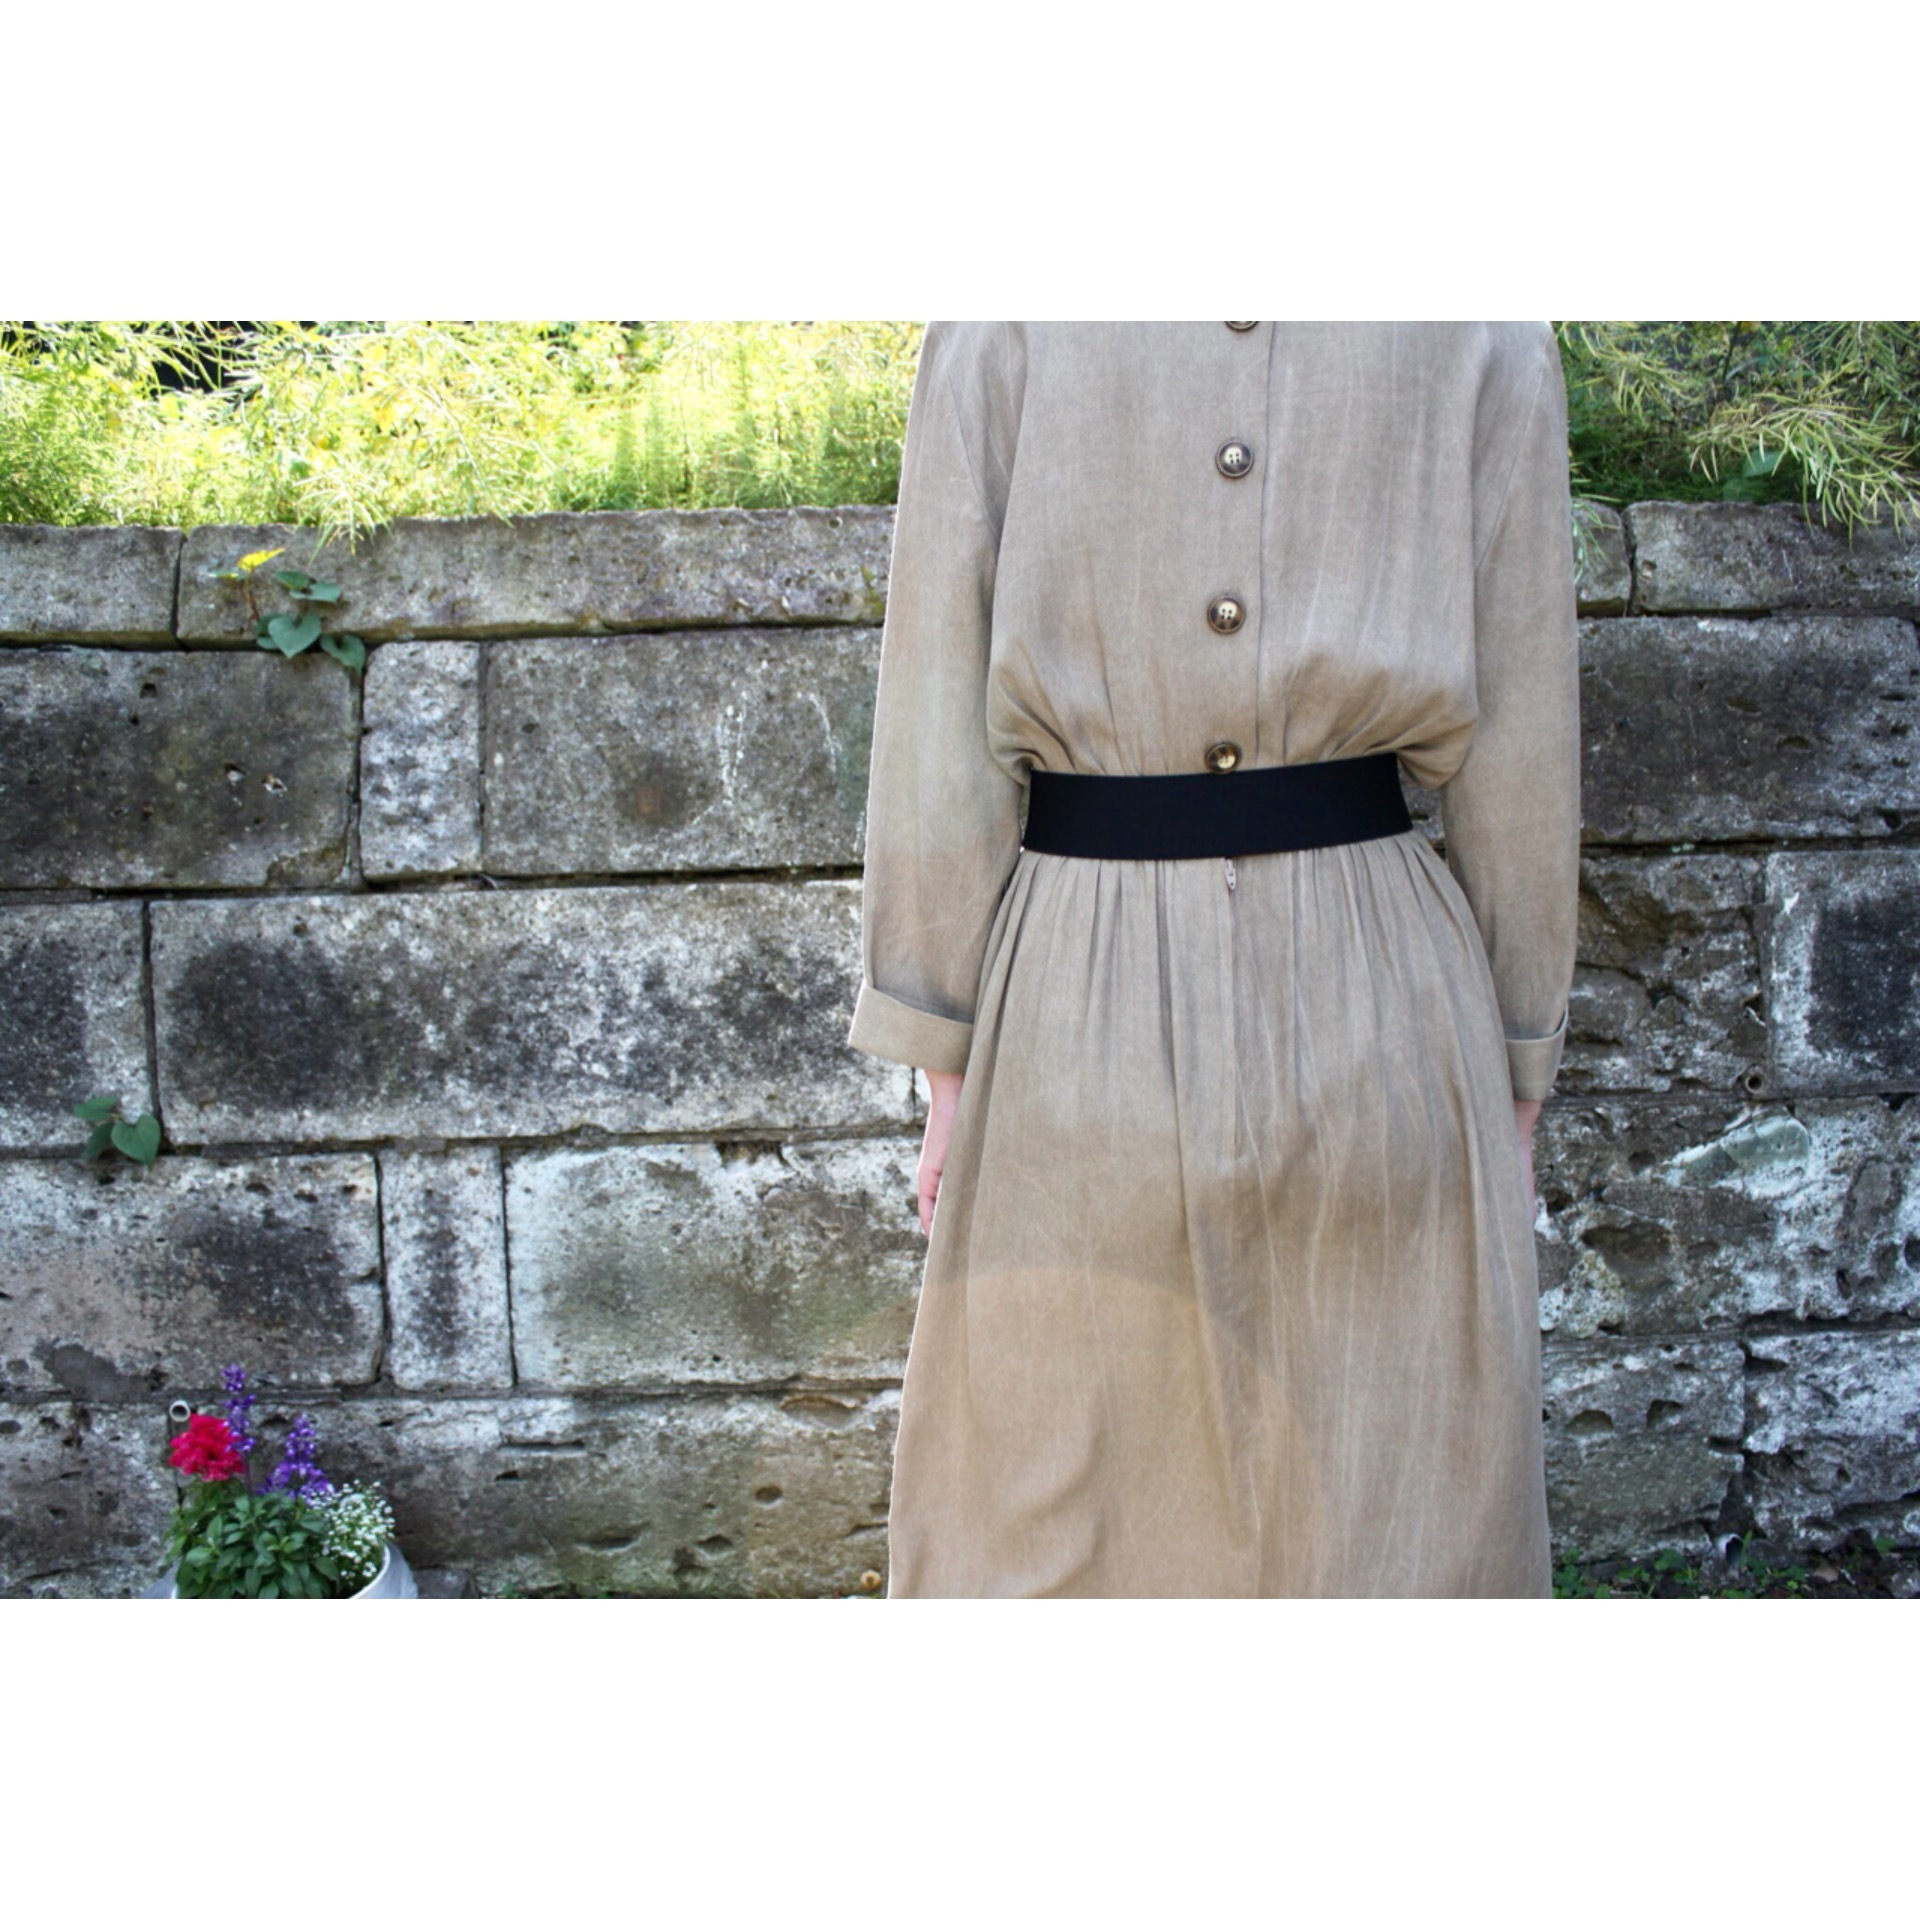 Vintage rayon peplum dress